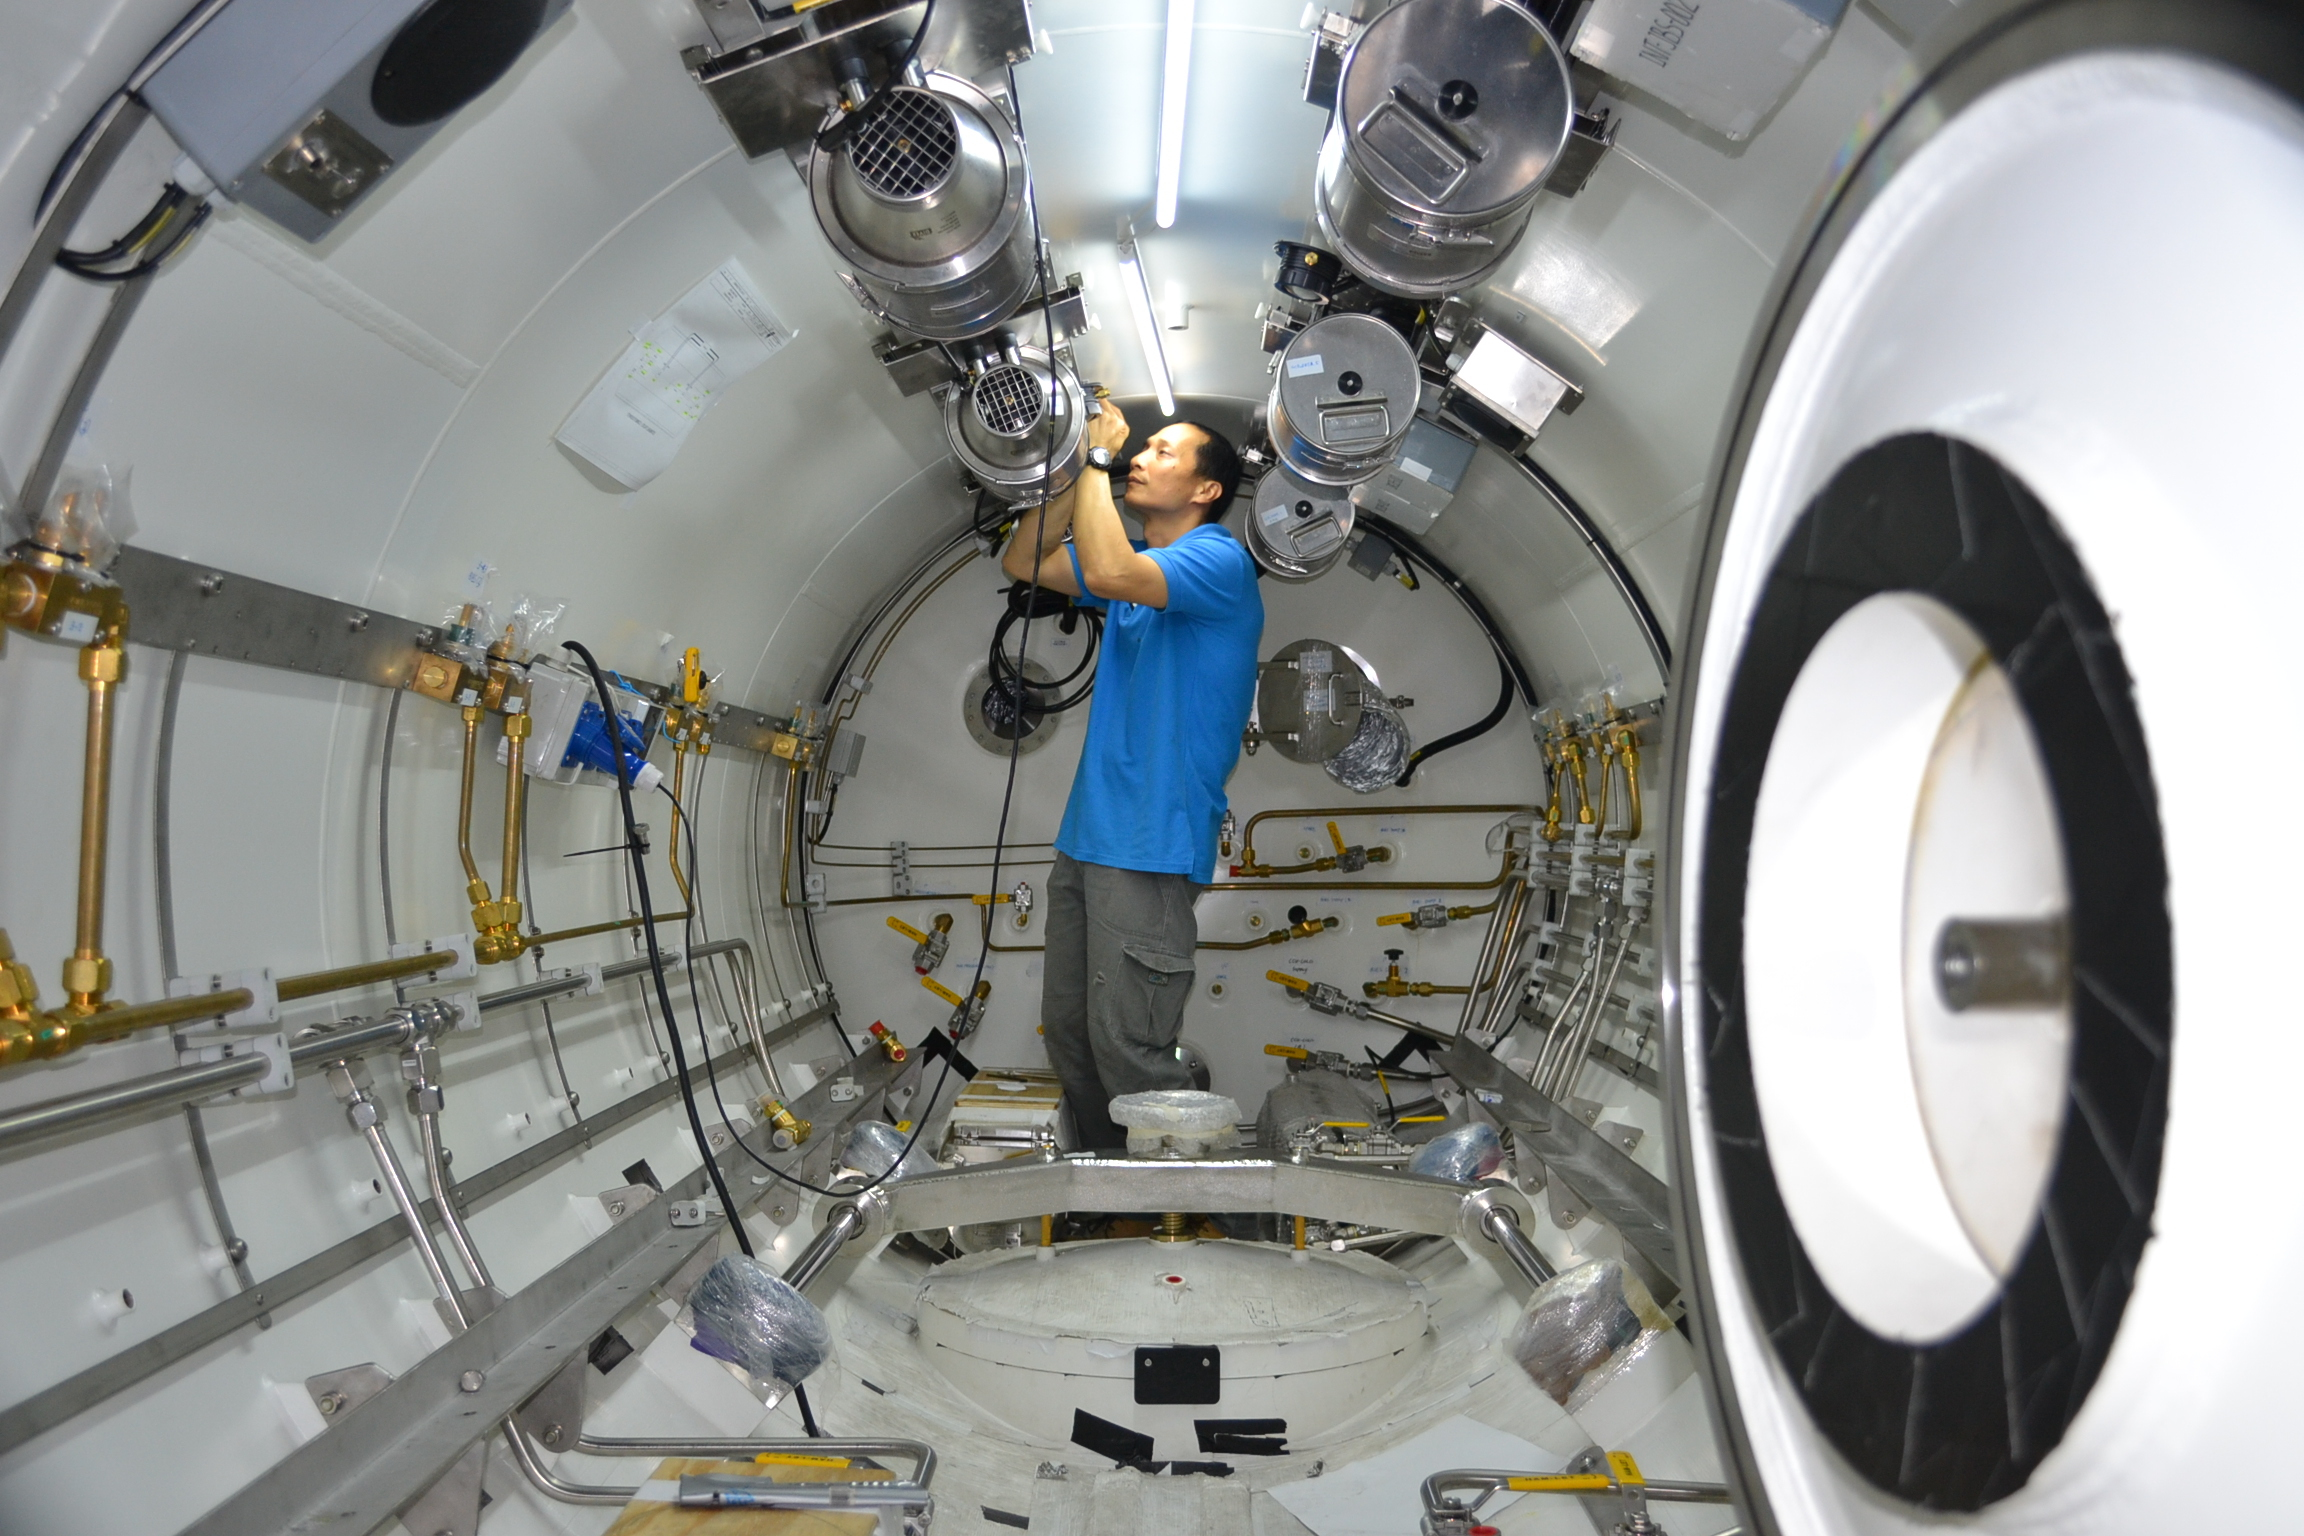 Fitting out work on the internal hyperbaric chamber